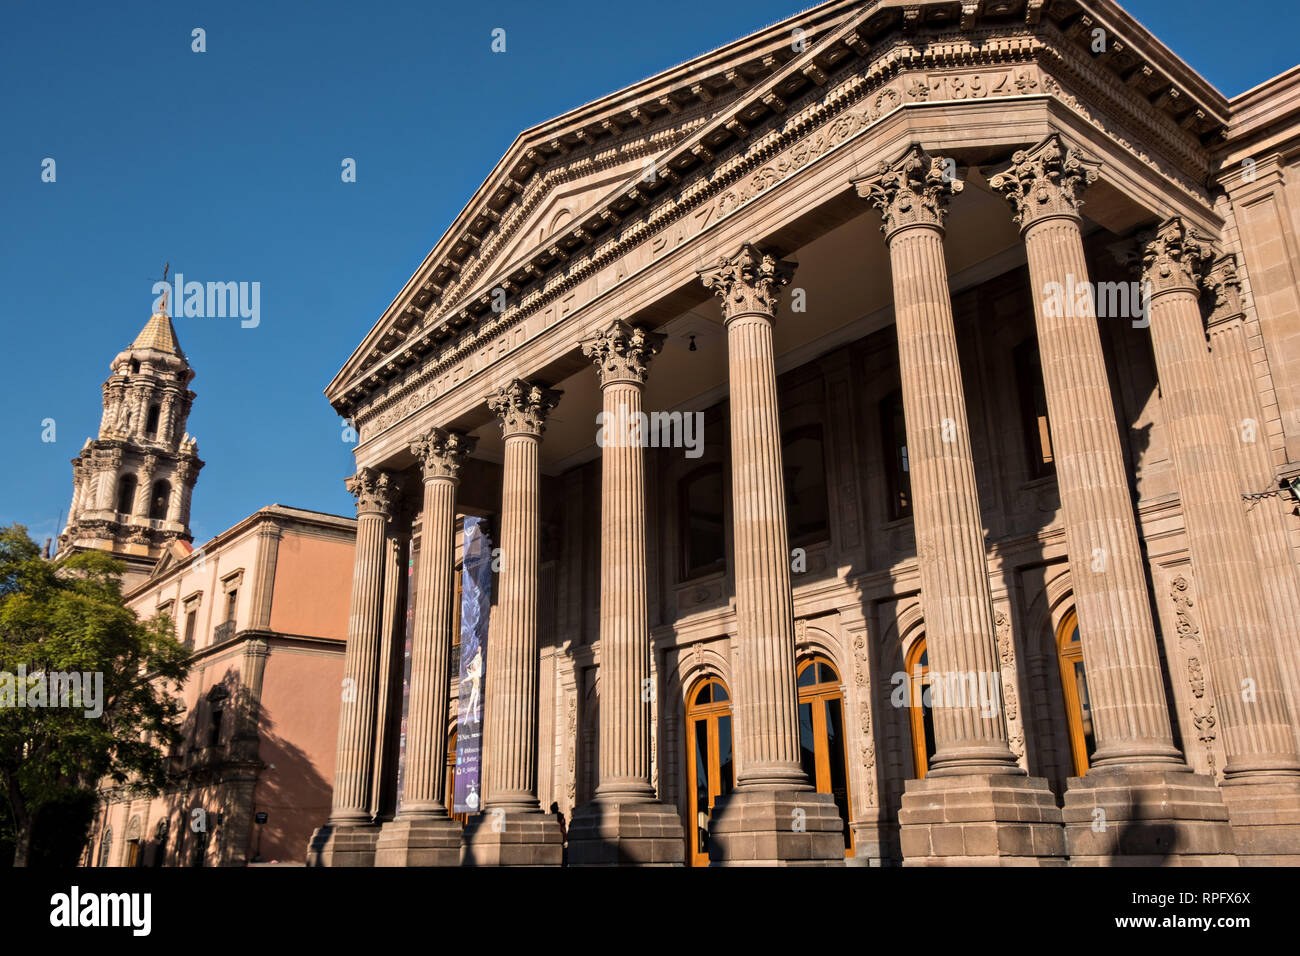 Elevated view of the Teatro de la Paz or Theater of Peace in the historic center on the Plaza del Carmen in the state capital of San Luis Potosi, Mexico. The building was built by the architect Jose Noriega with French influences and neoclassical style, with its facade in pink quarry in 1894. Stock Photo